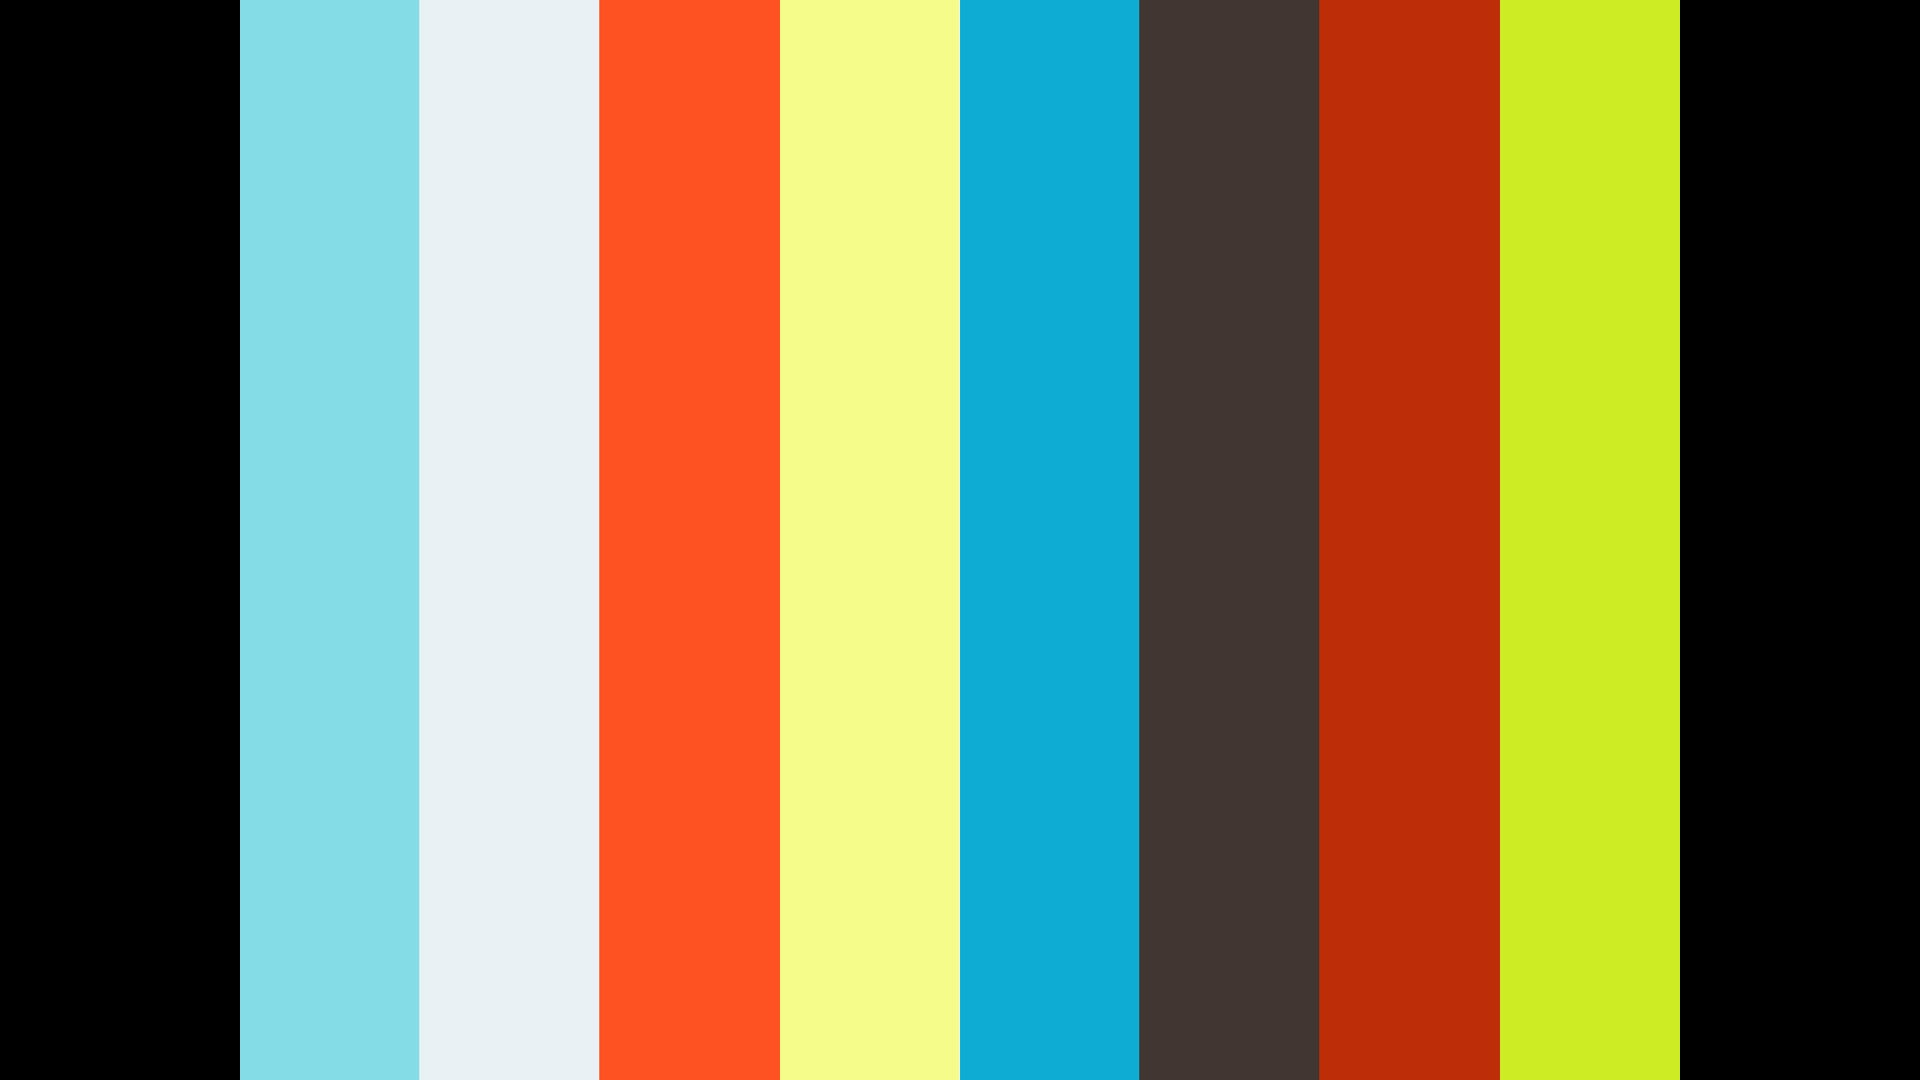 LightFM - 10s